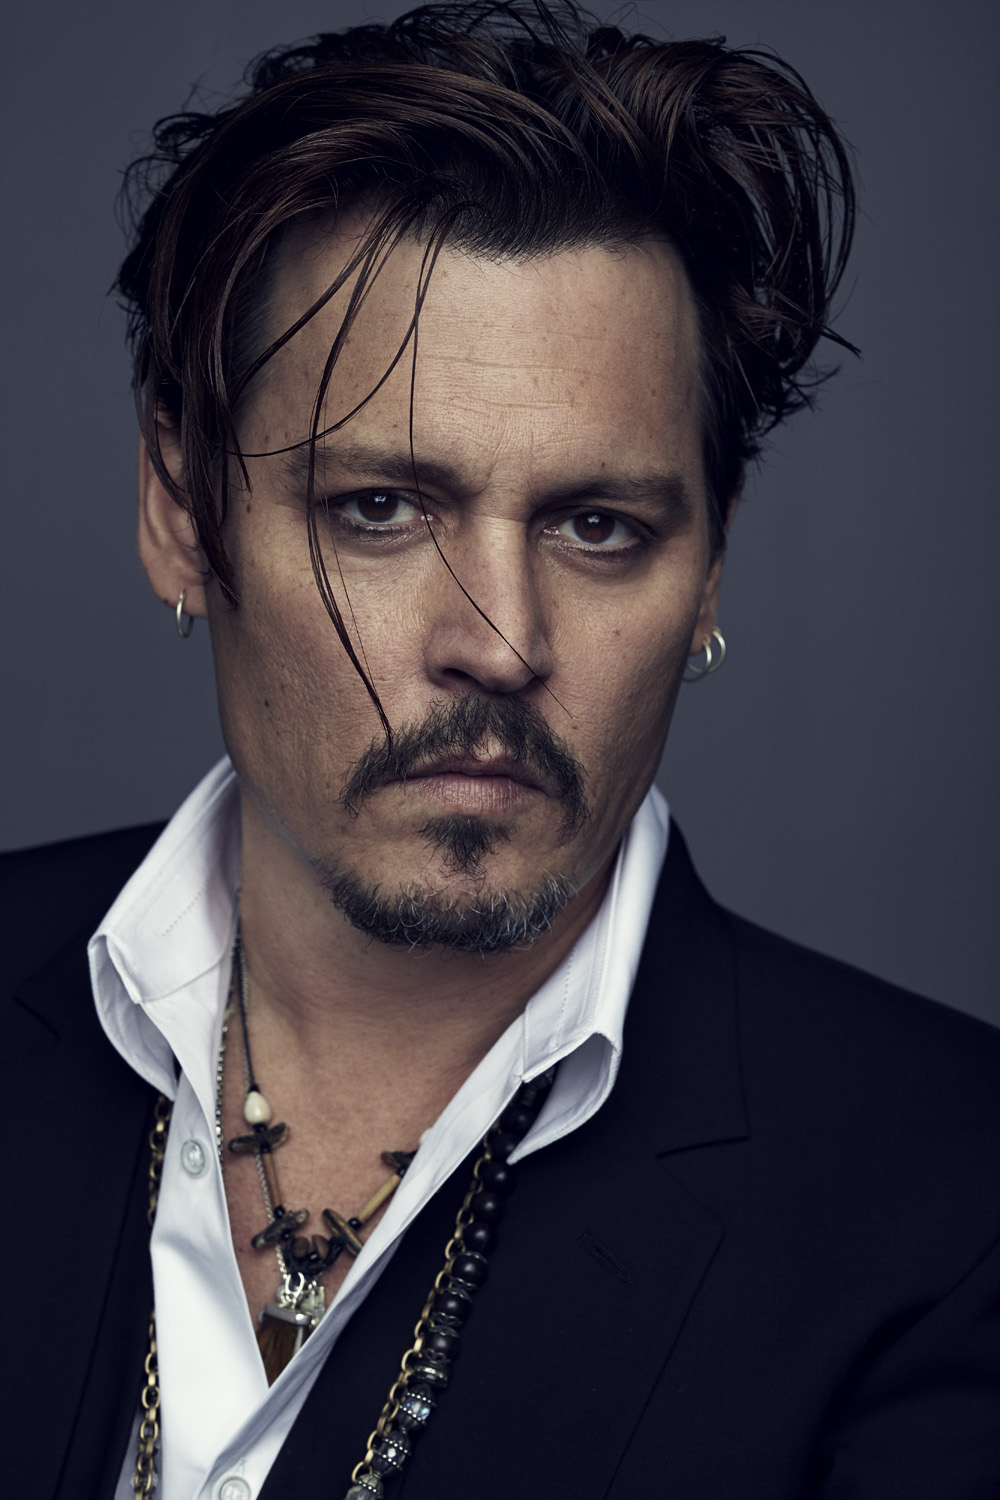 Johnny Depp nuovo volto Dior (Nathaniel Goldberg for Christian Dior Parfums)